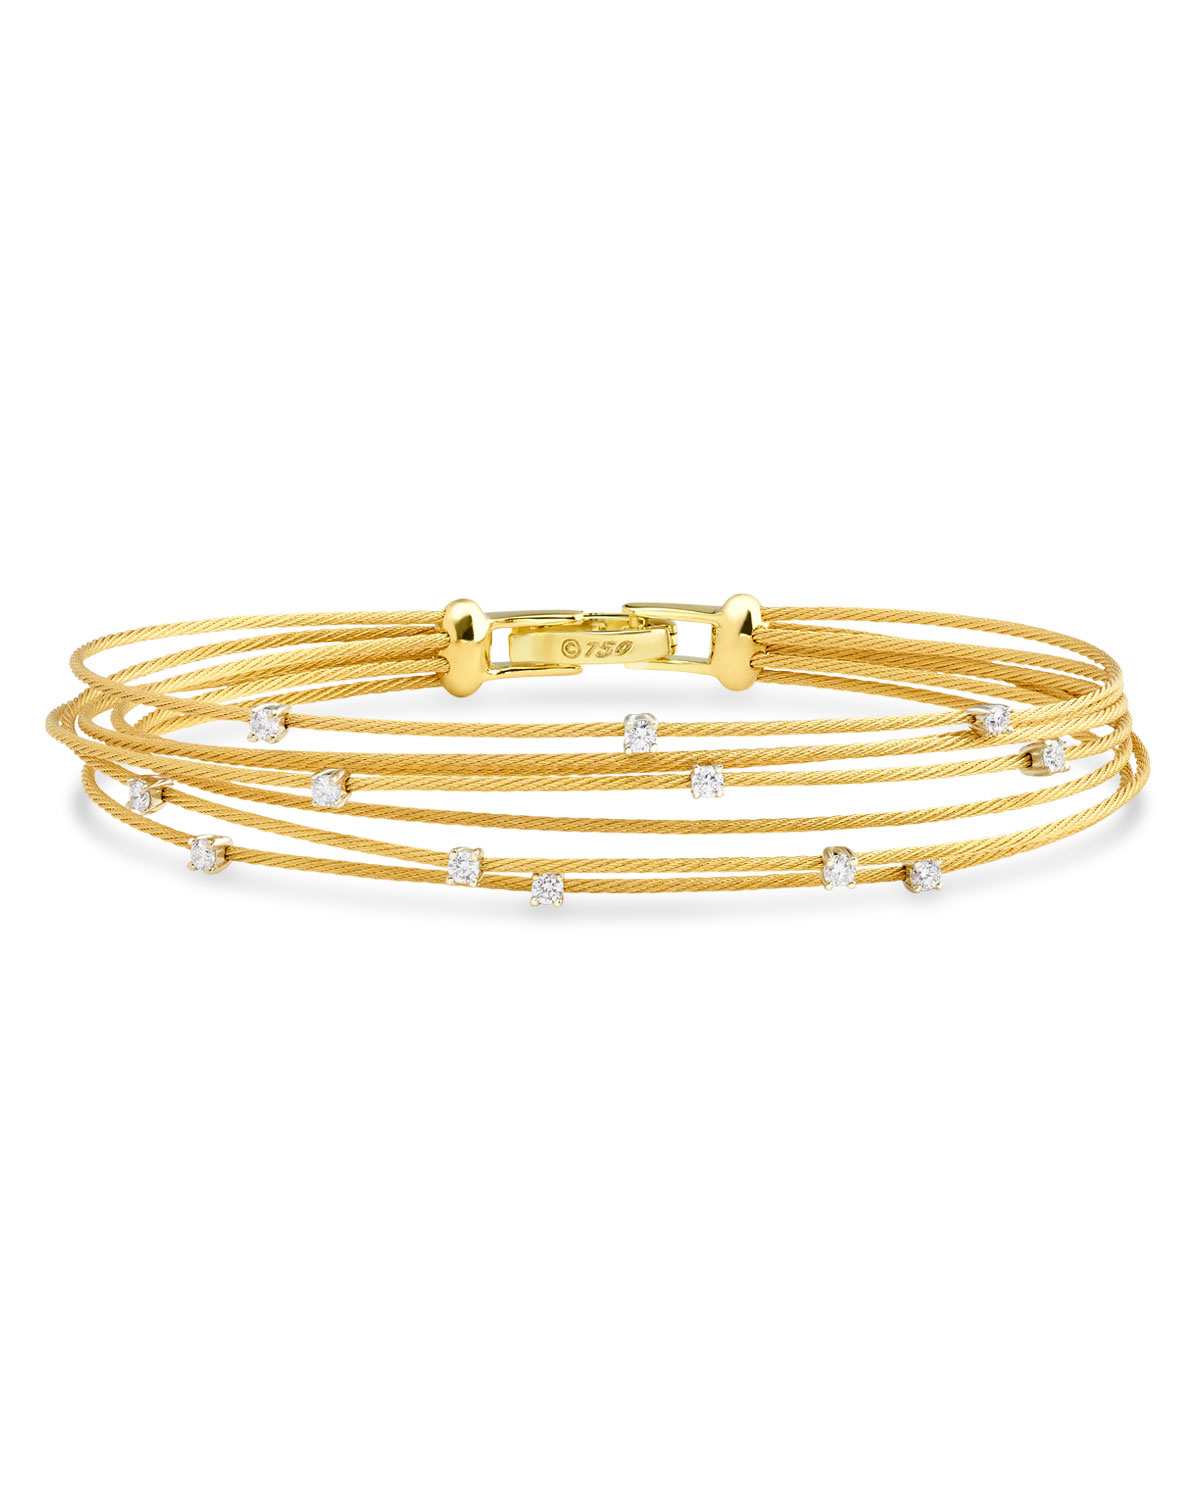 Paul Morelli Seven-Strand Cable Wire Bracelet with Diamonds